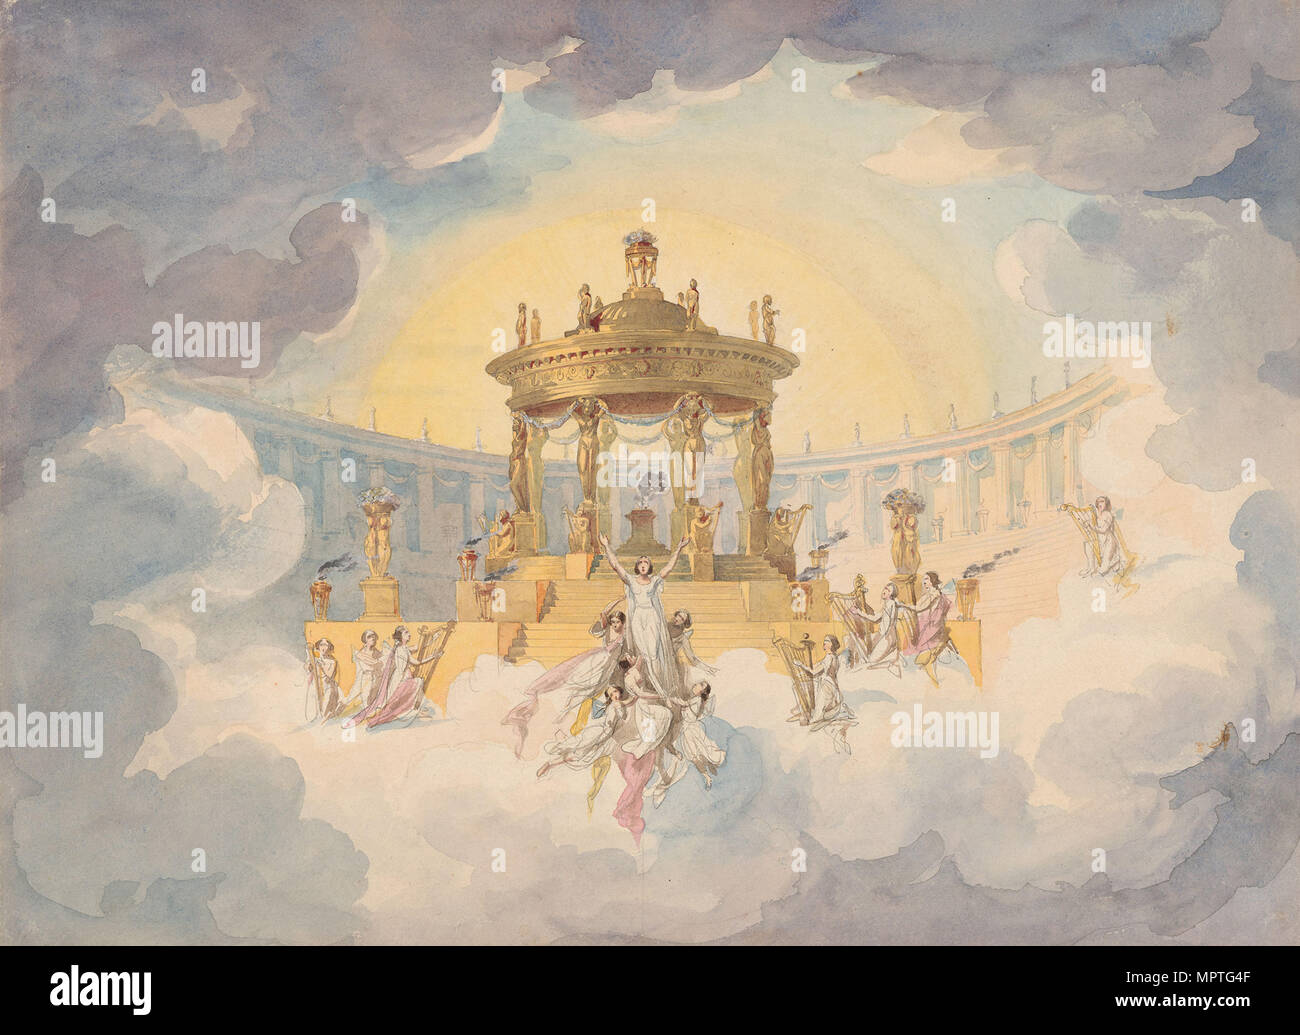 Stage design for the opera Faust by Ch. Gounod, c. 1870. - Stock Image